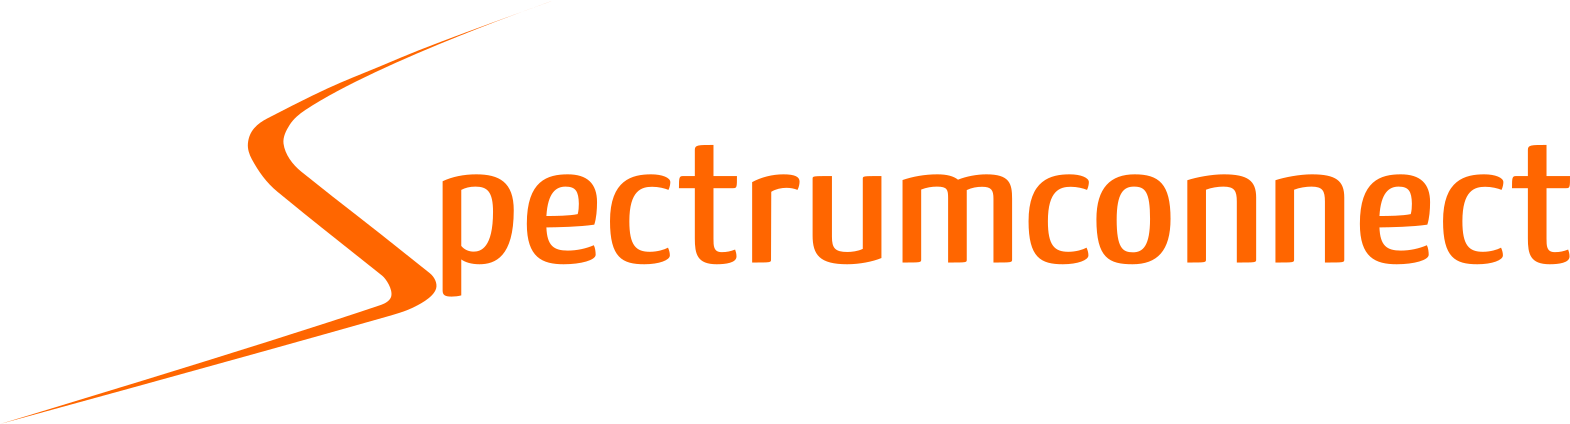 Spectrum Connect